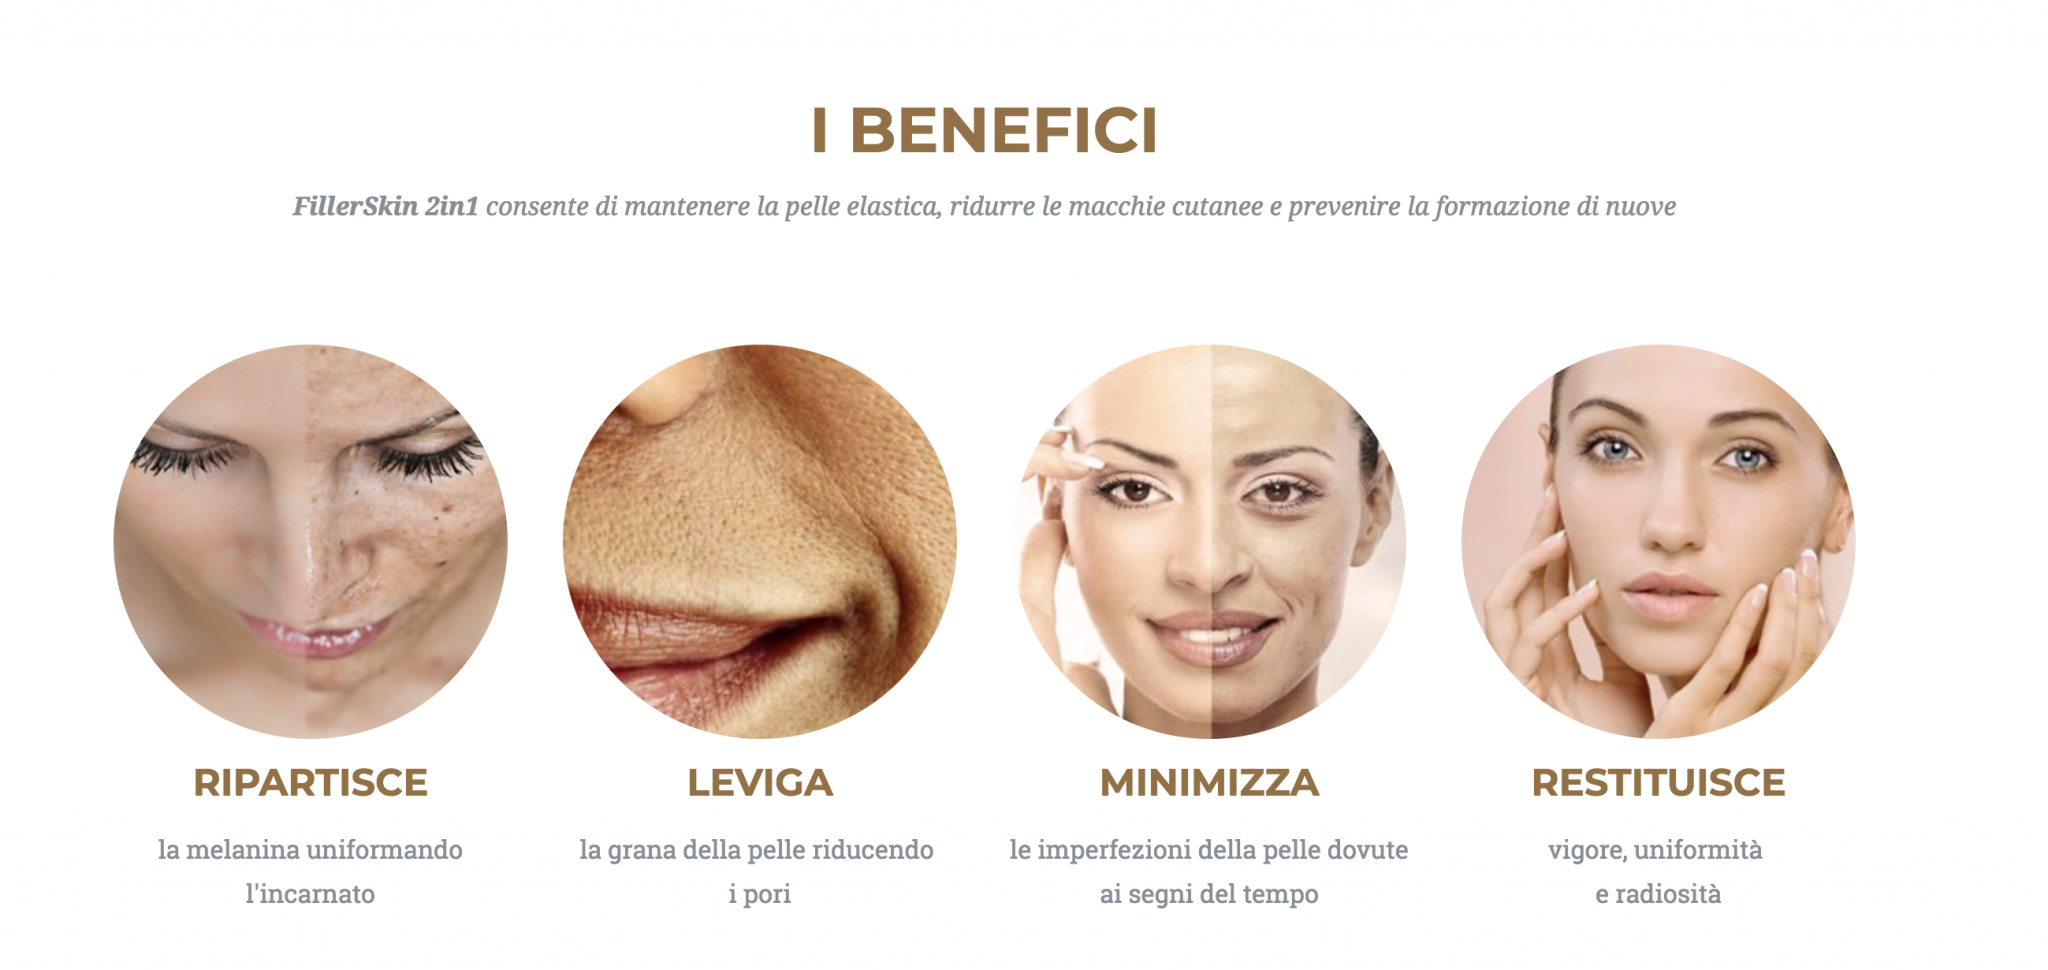 Benefici fillerskin